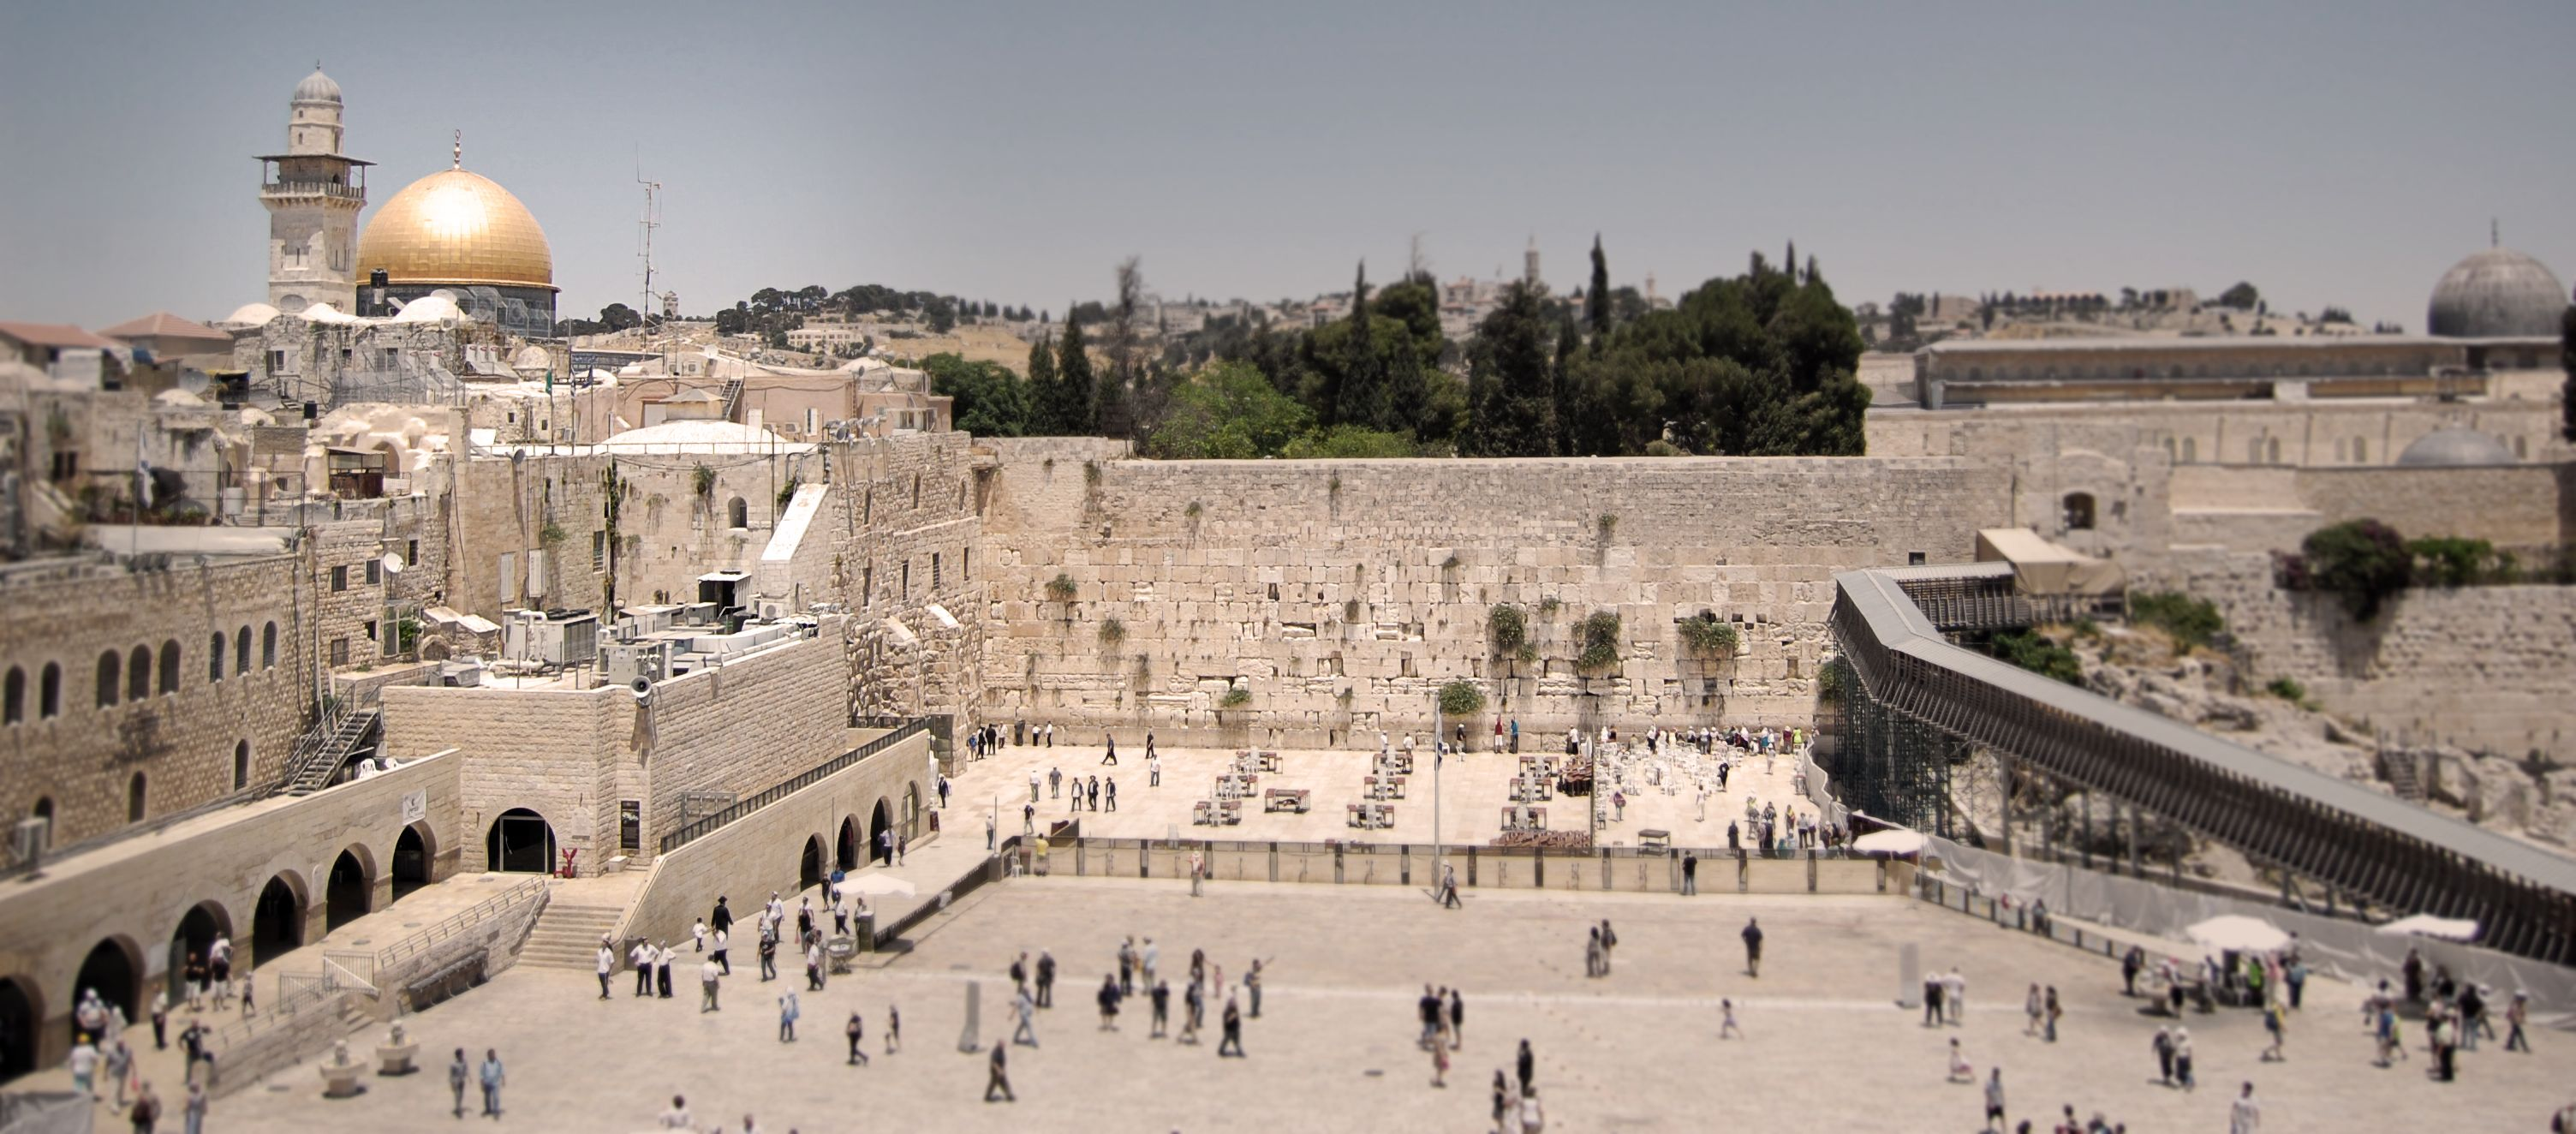 3008x1324 The Weeping Wall In Israel Wallpapers High Quality ...